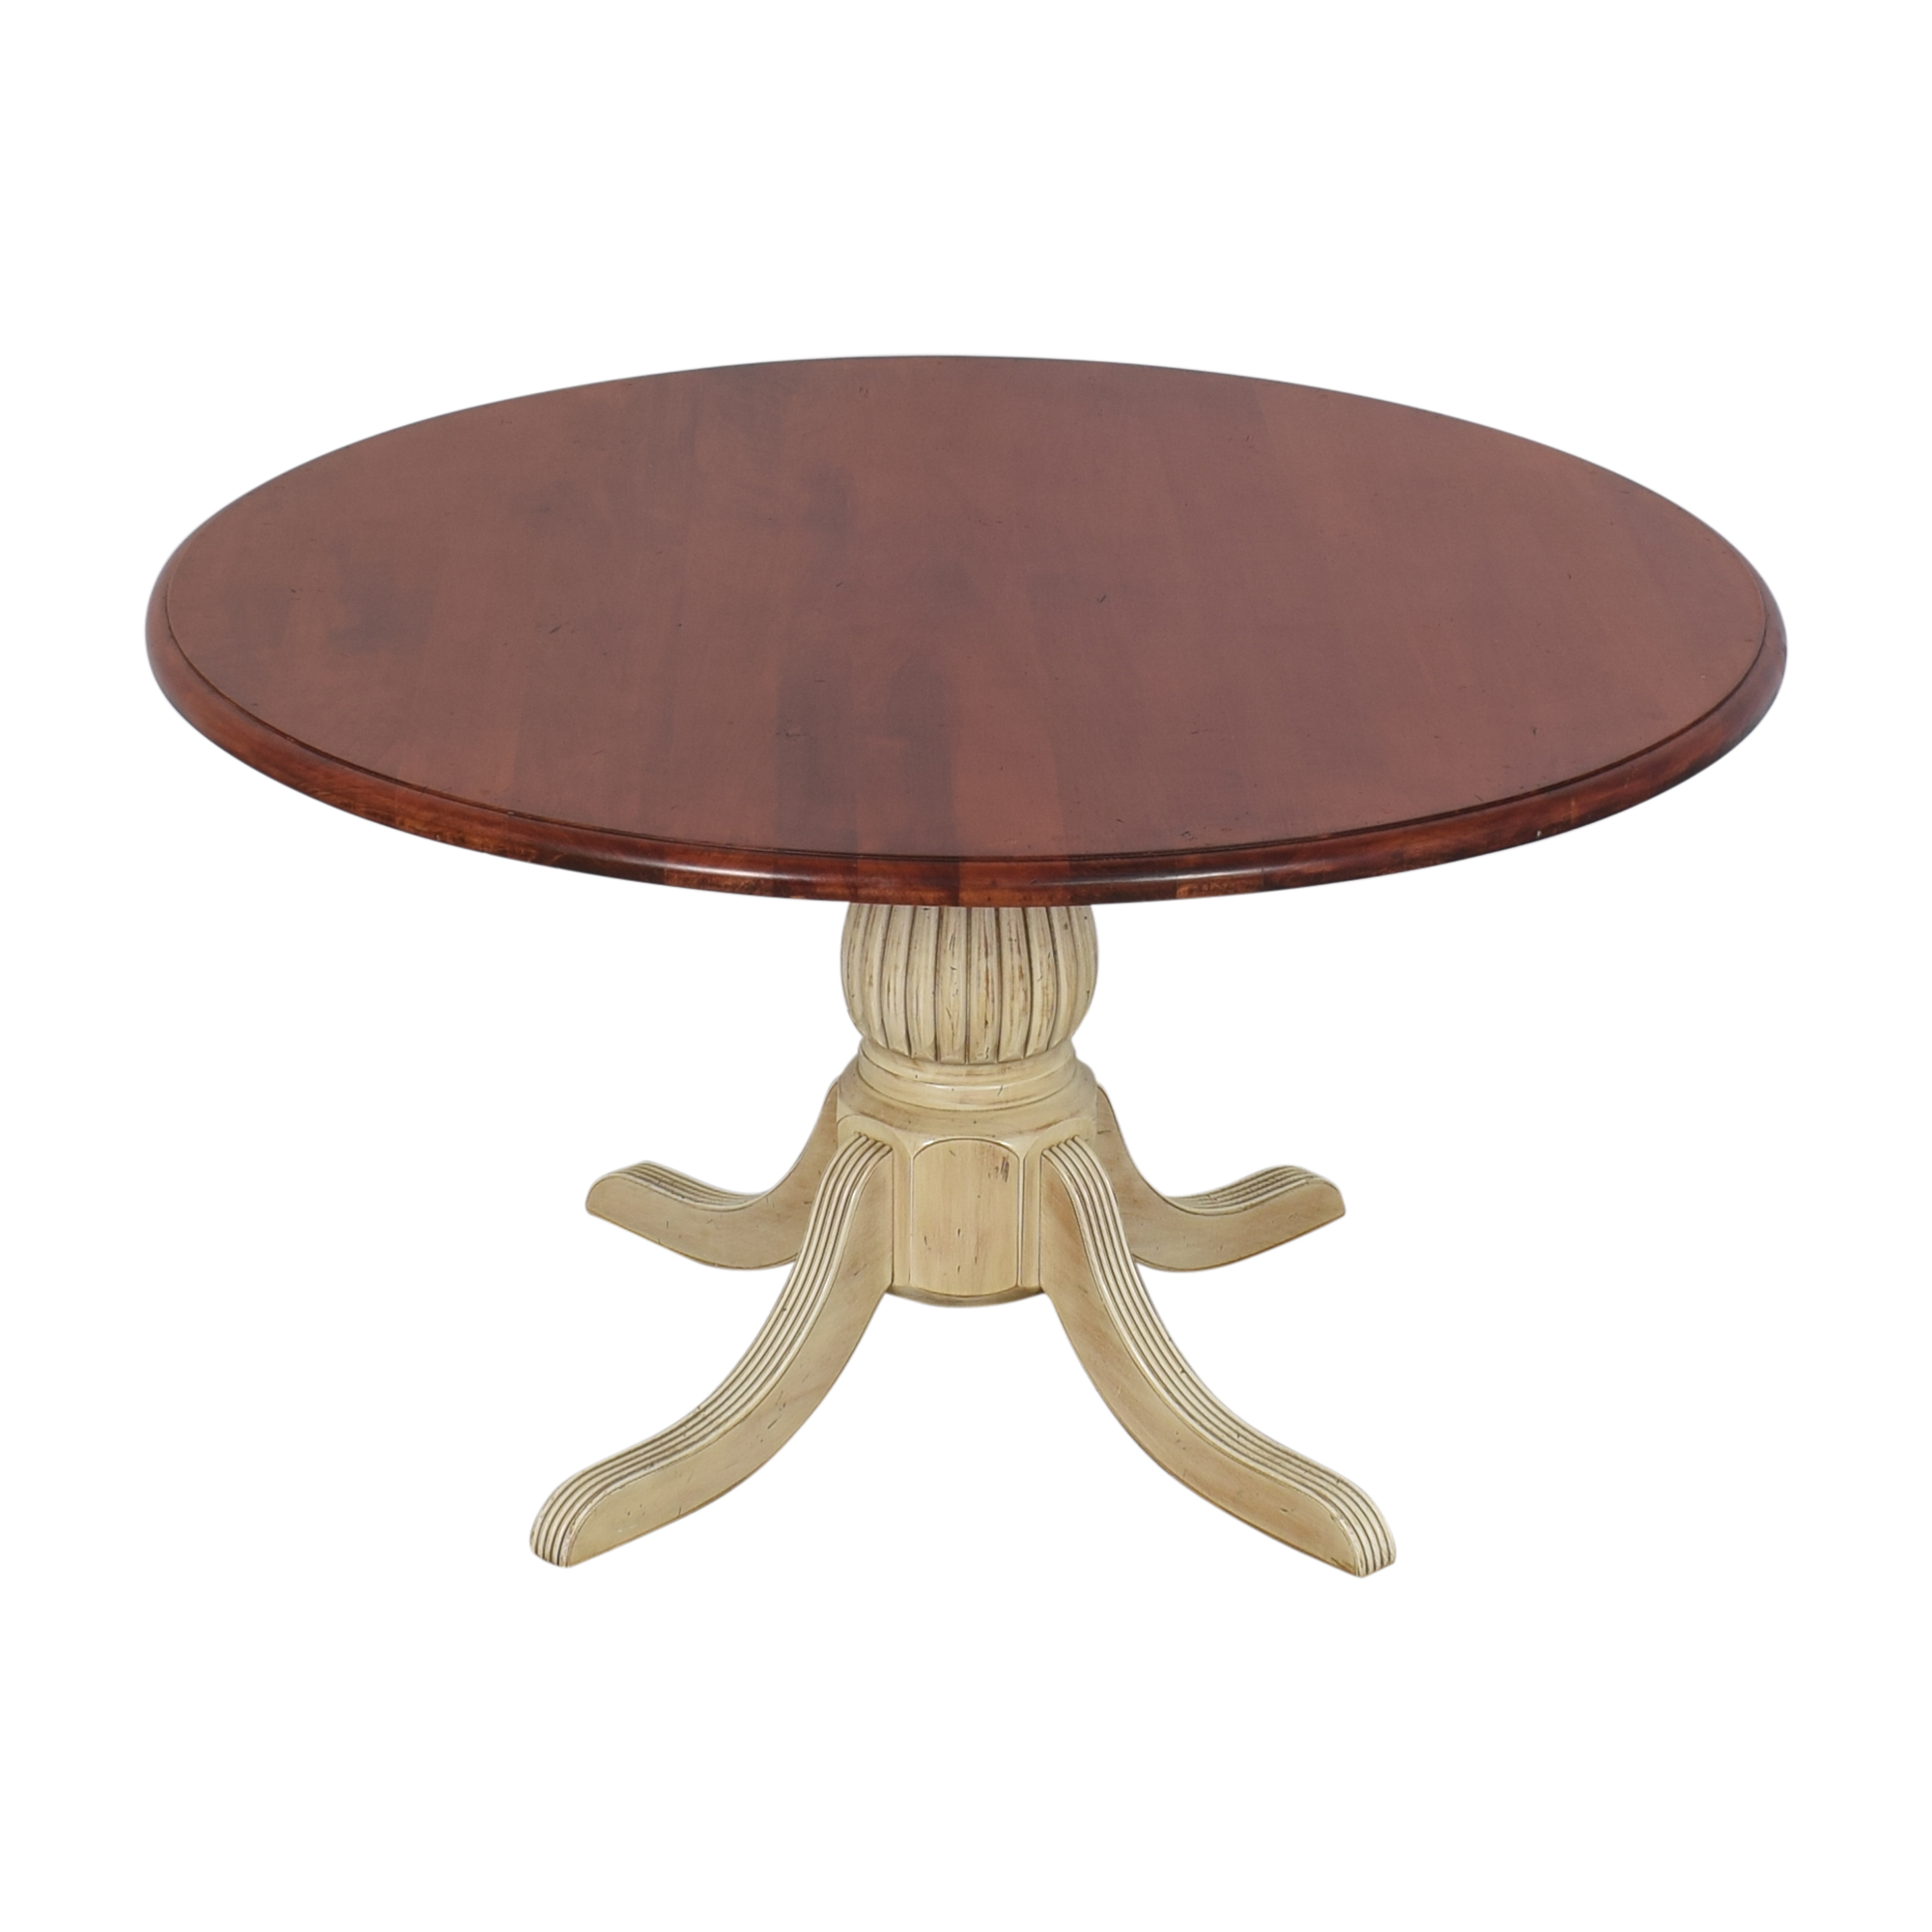 Four Foot Round Pedestal Dining Table price